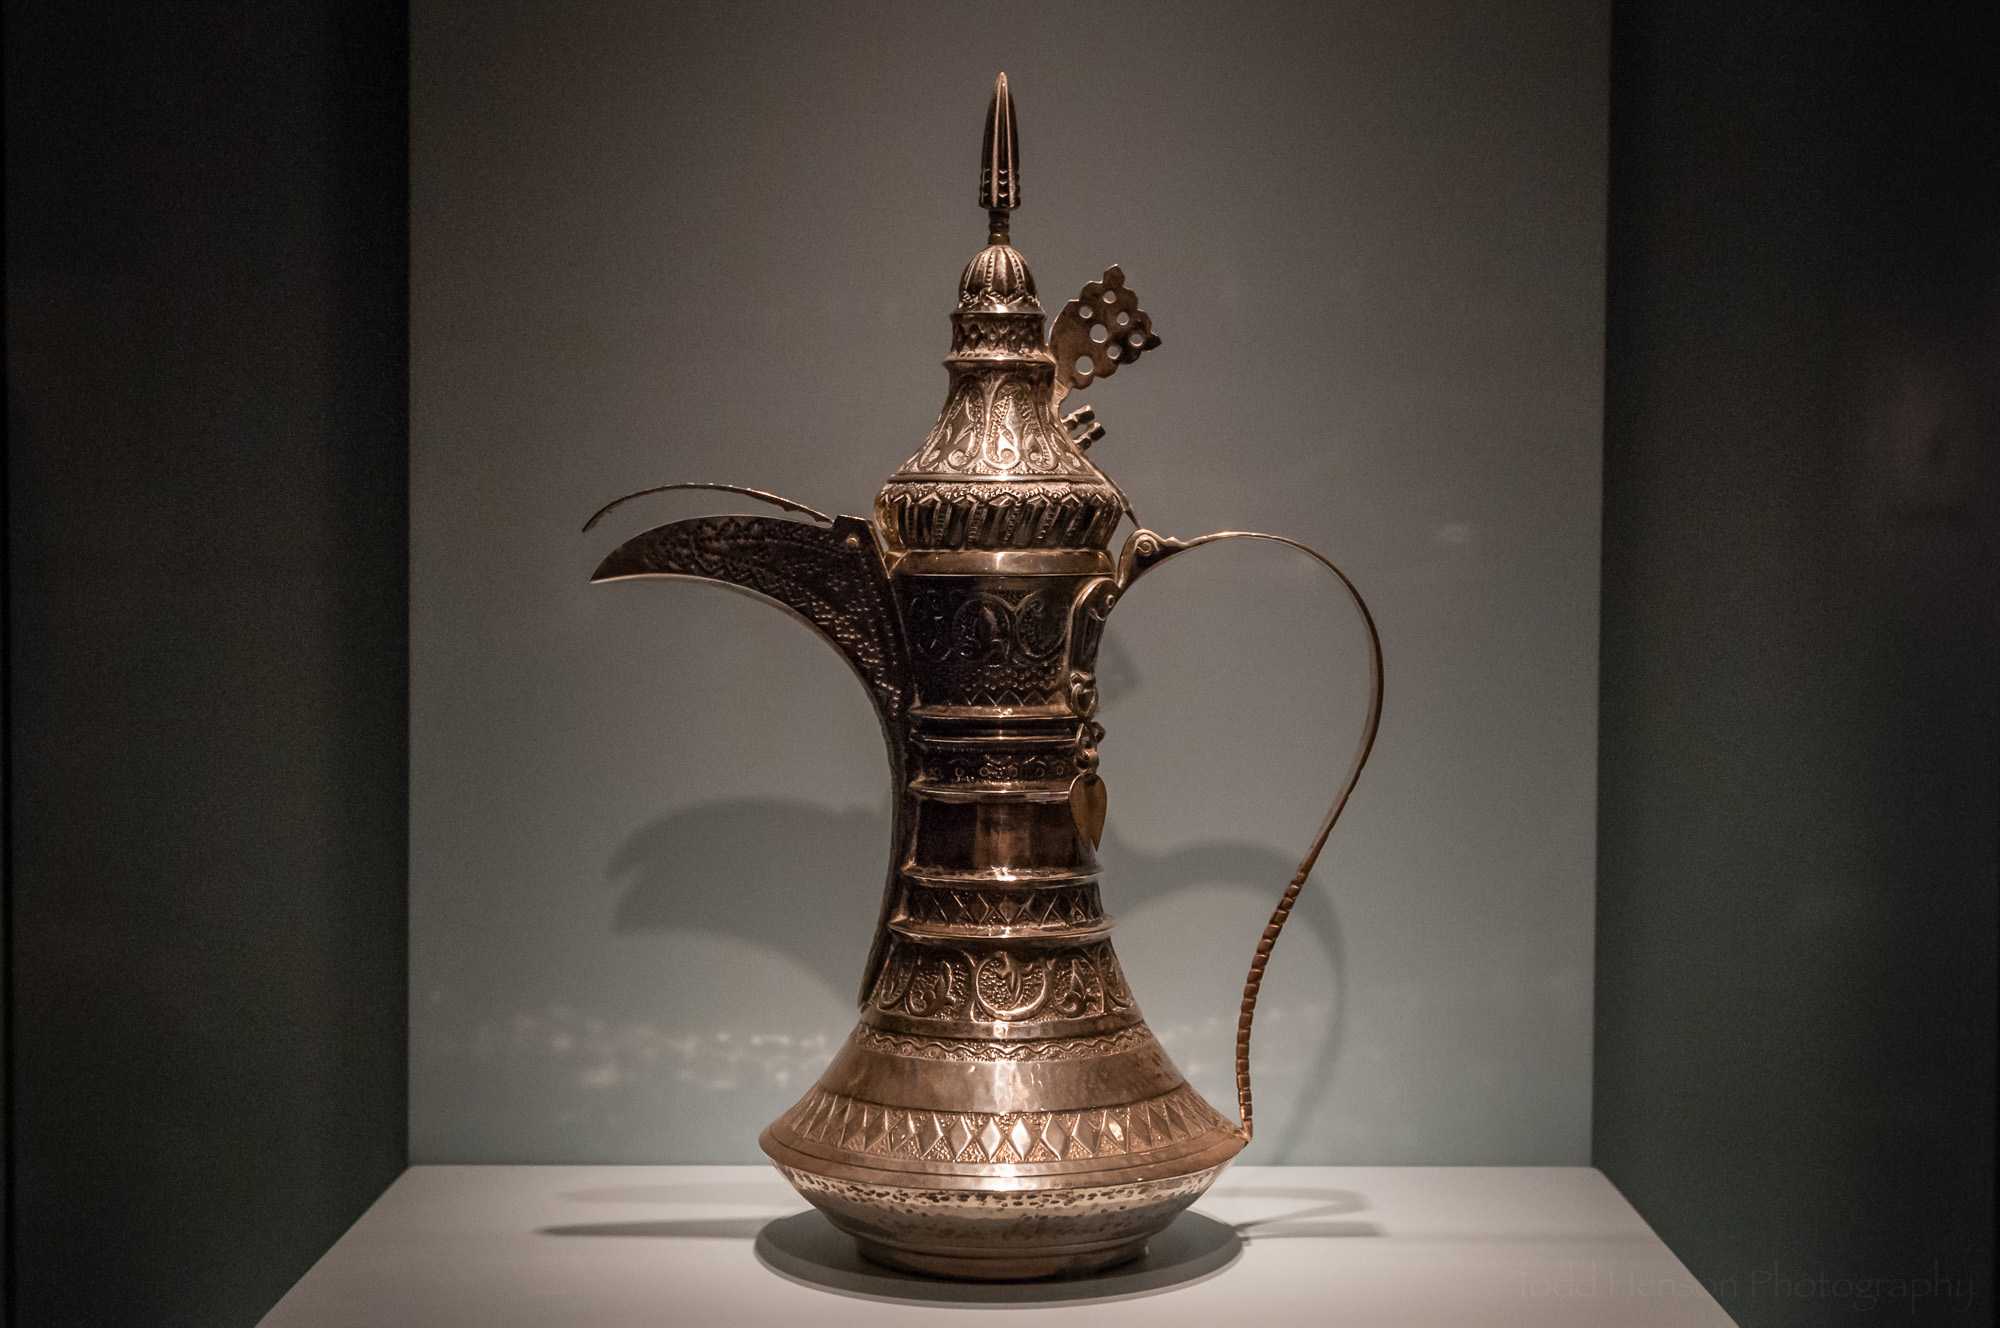 Silver coffee pot from the Sultanate of Oman